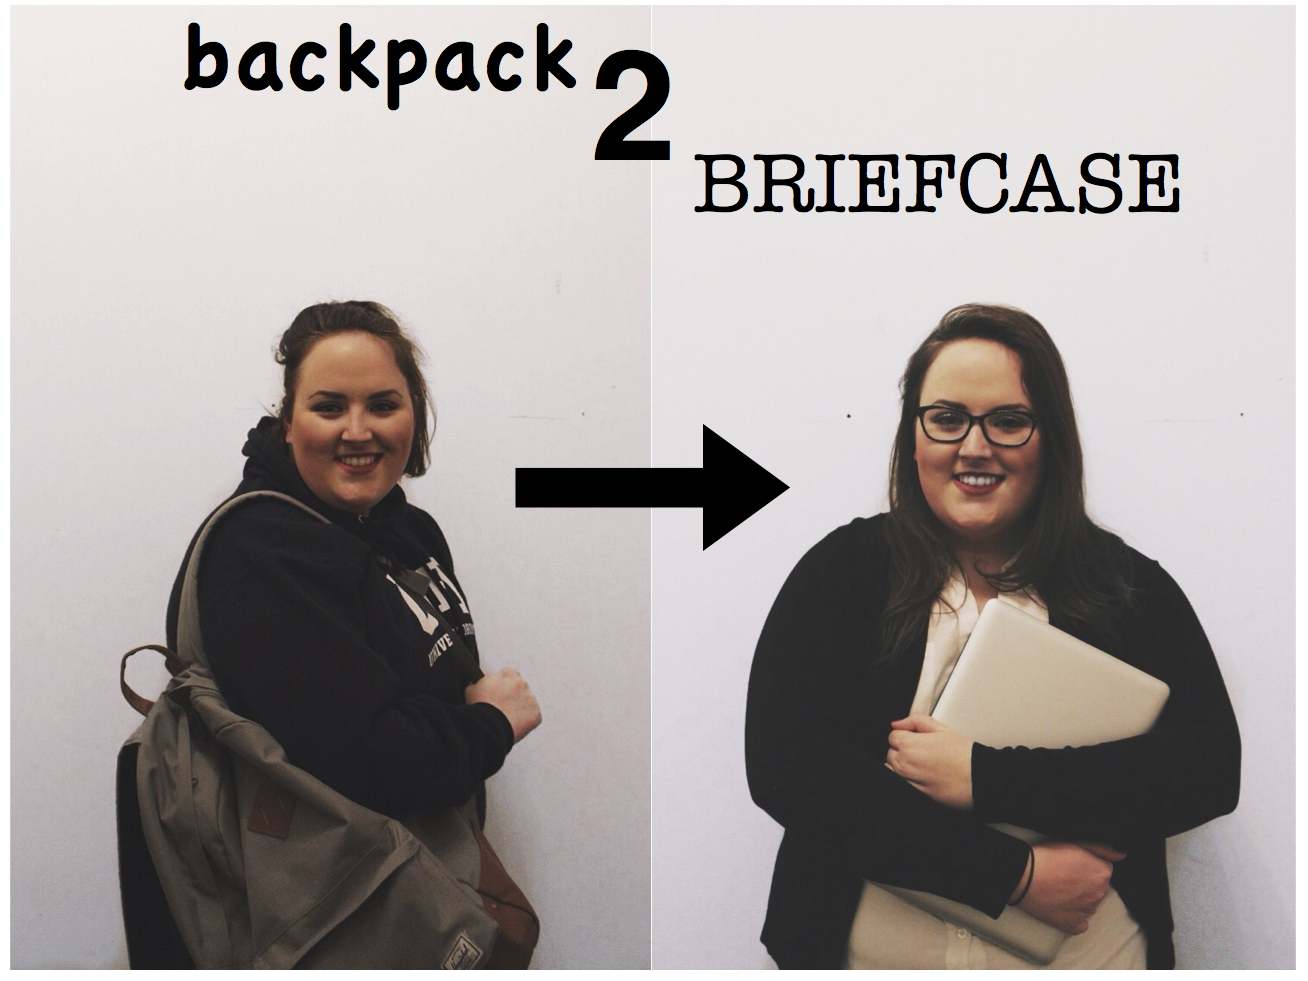 "photo of myself with the text overlay ""backpack 2 briefcase"" - on the left hand side is a picture of me dressed as a student holding a backpack, while on the right hand side is a picture of me looking more professional"